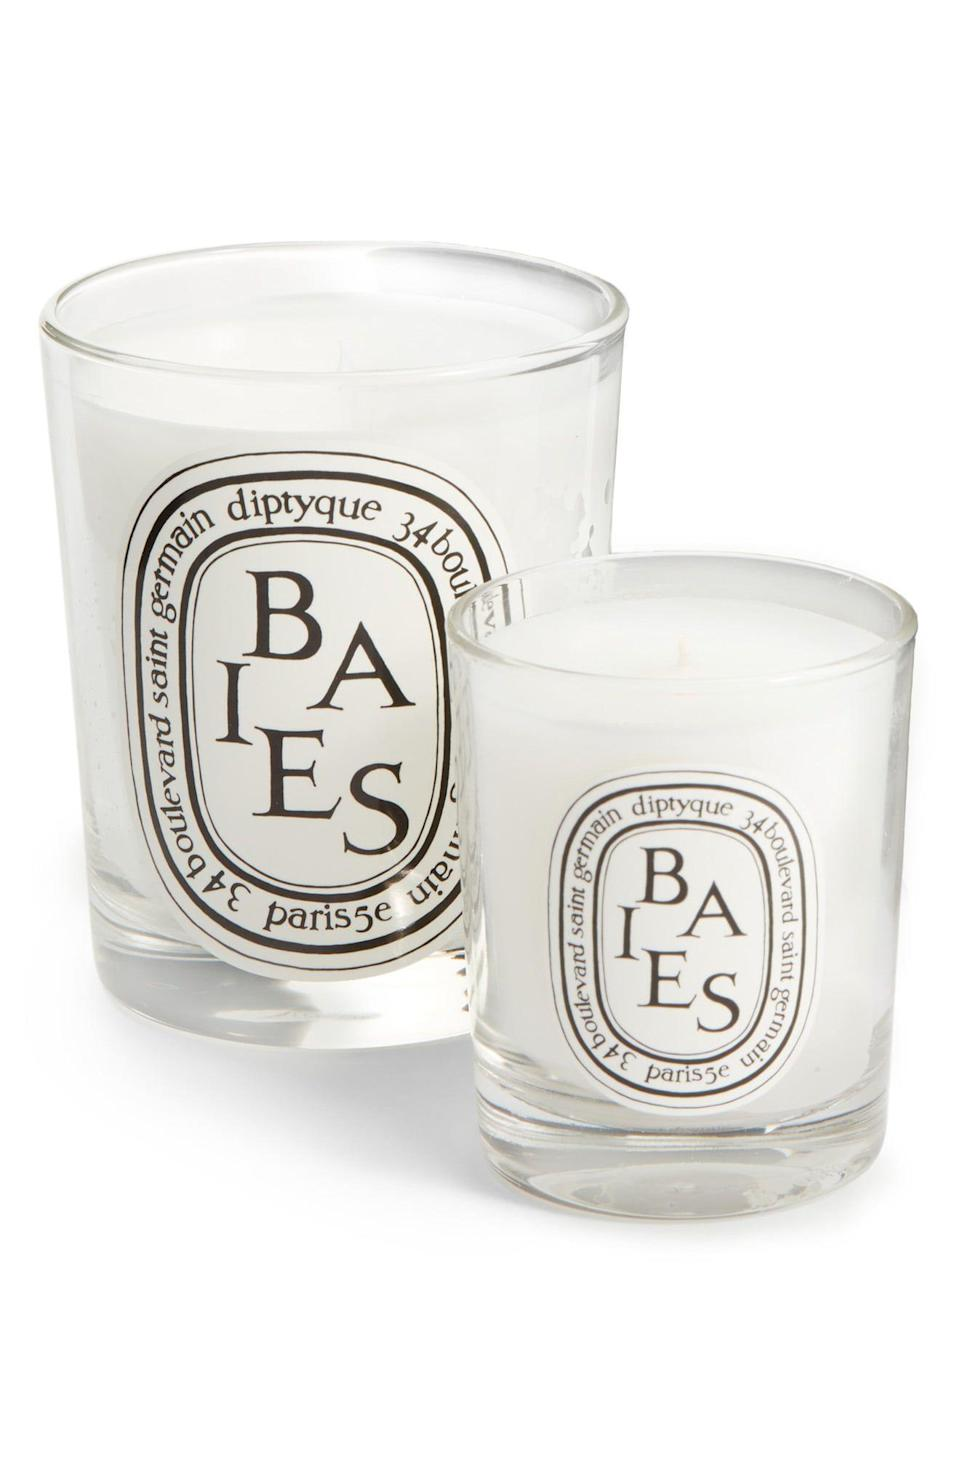 "<p><strong>DIPTYQUE</strong></p><p>nordstrom.com</p><p><strong>$36.00</strong></p><p><a href=""https://go.redirectingat.com?id=74968X1596630&url=https%3A%2F%2Fwww.nordstrom.com%2Fs%2Fdiptyque-baies-berries-candle%2F3227984&sref=https%3A%2F%2Fwww.womansday.com%2Flife%2Fg19843084%2Fgifts-for-mother-in-law%2F"" rel=""nofollow noopener"" target=""_blank"" data-ylk=""slk:Shop Now"" class=""link rapid-noclick-resp"">Shop Now</a></p><p>Surprise your mother-in-law who spoils others and never herself with the fancy, top-of-the-line candle that everyone raves about. </p>"